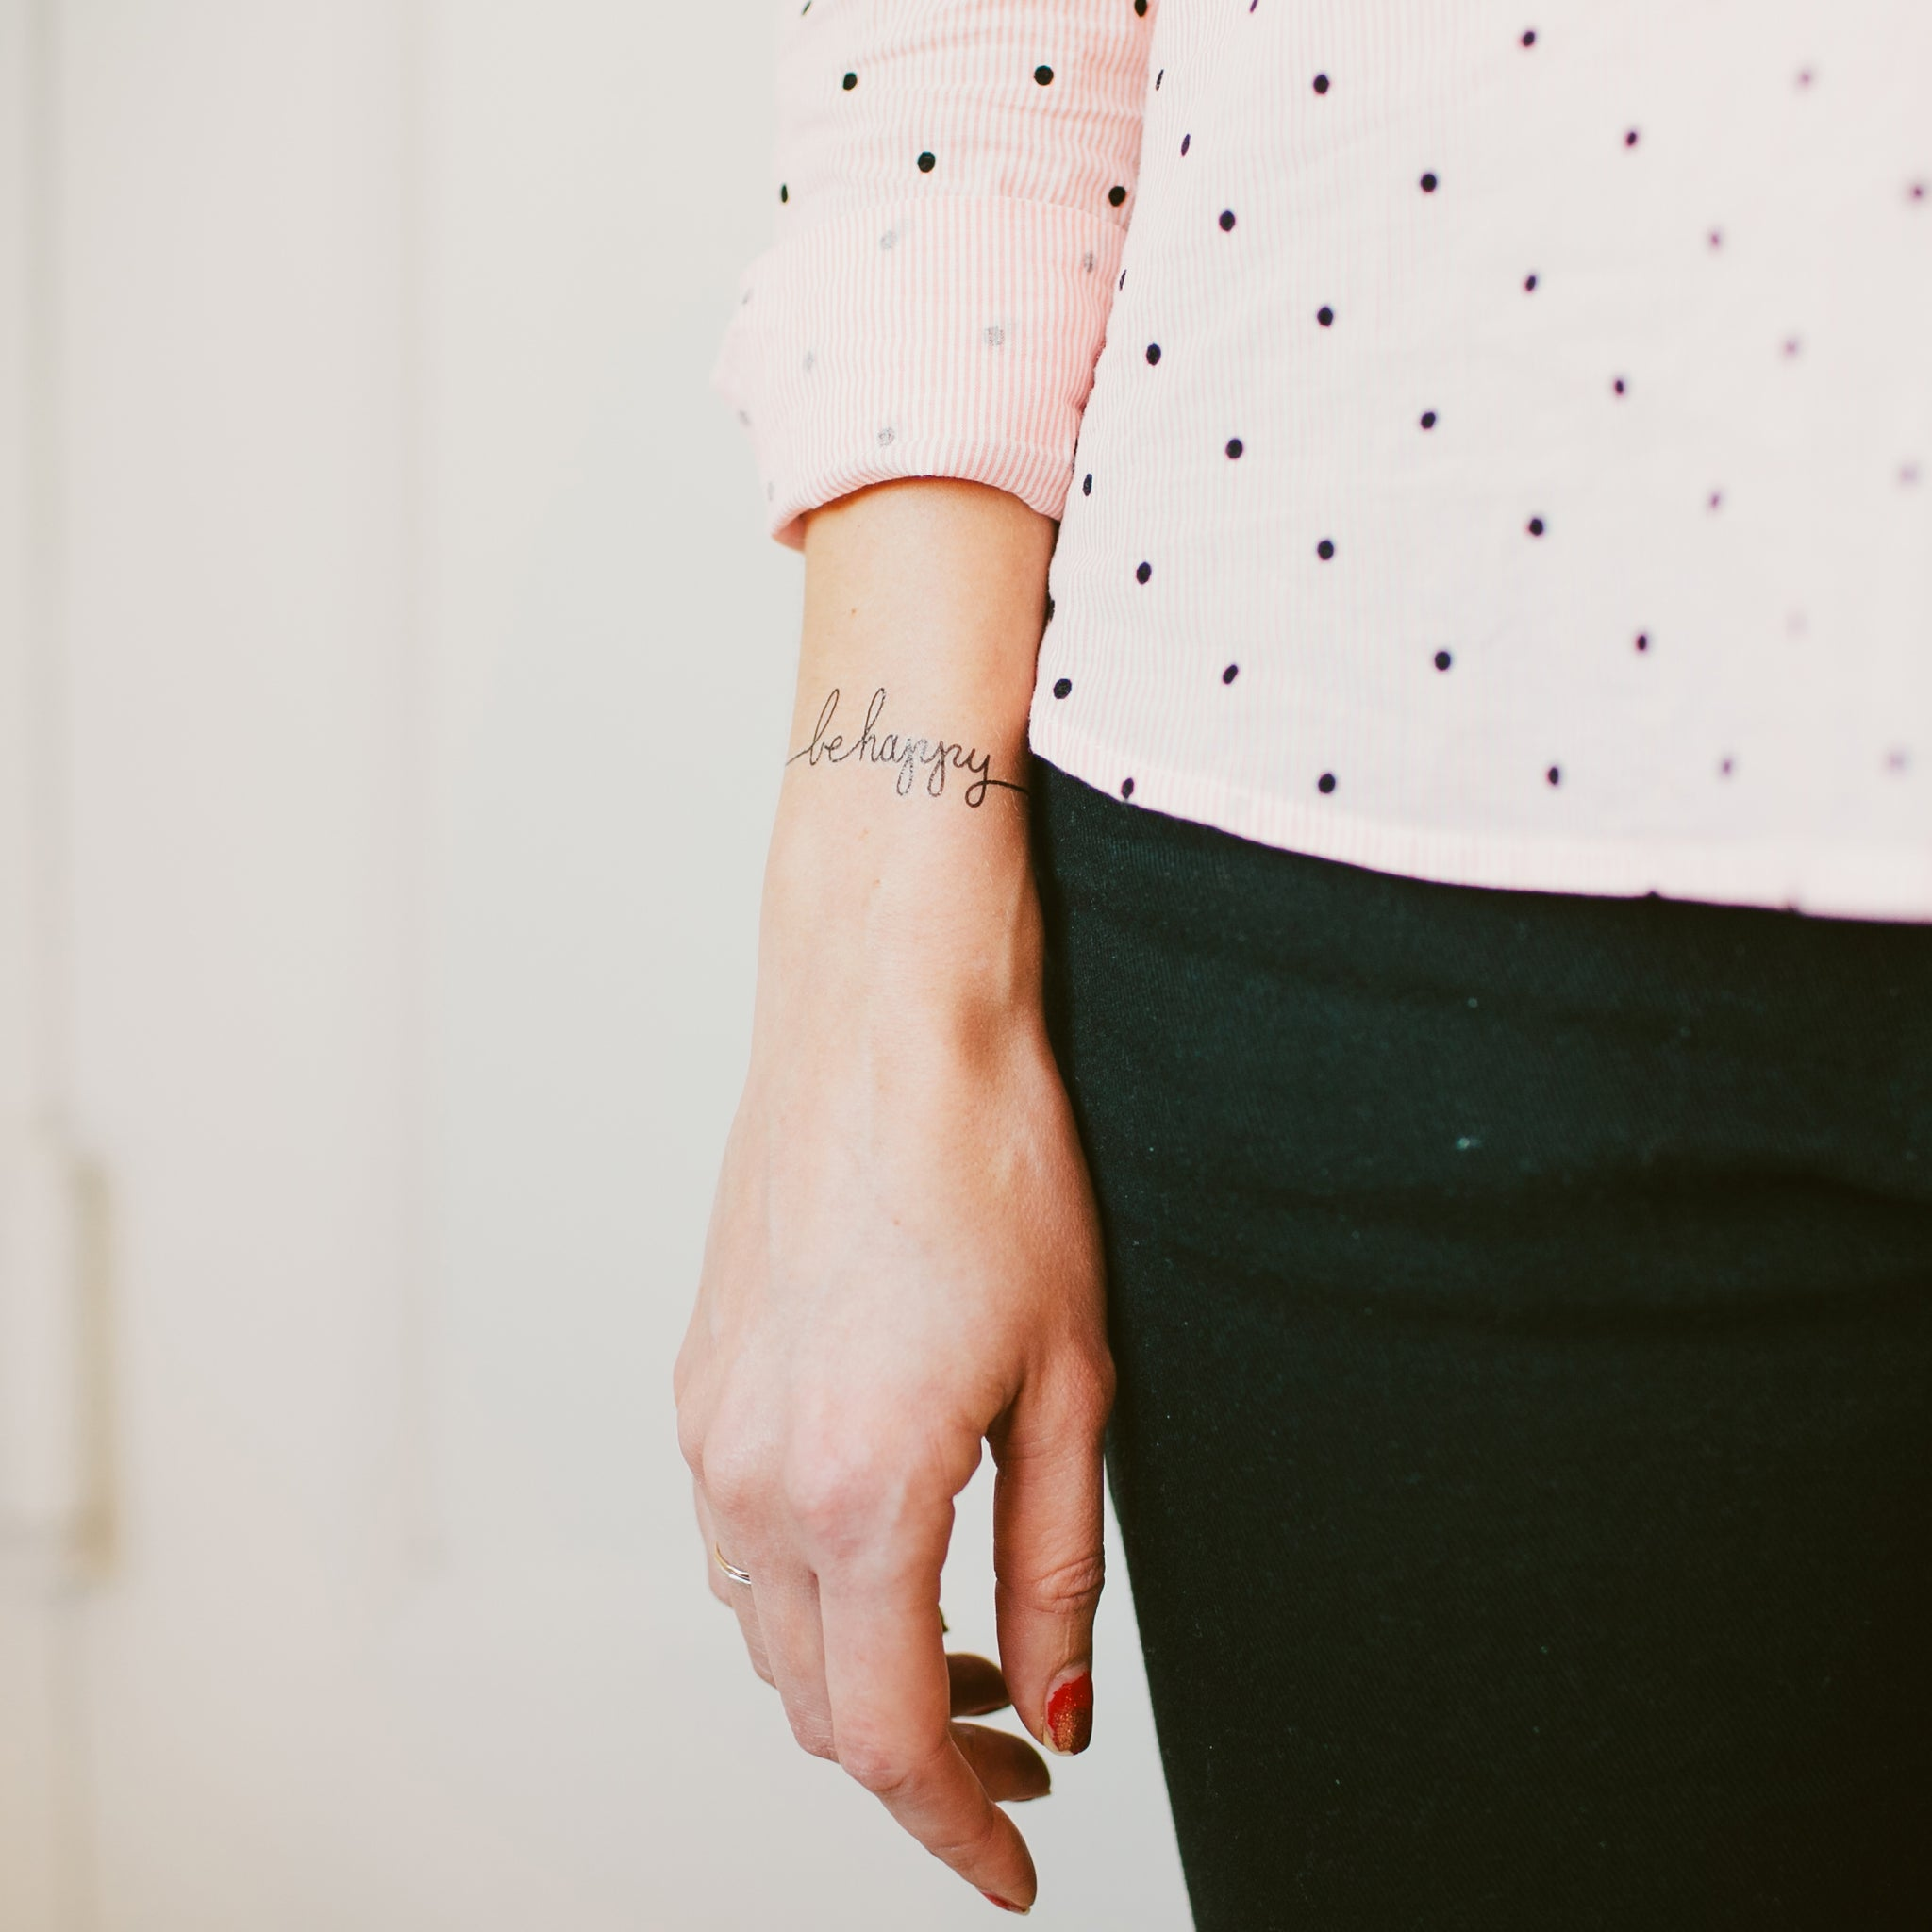 5a9d6a3ff74b3 Be Happy by Lila Symons from Tattly Temporary Tattoos